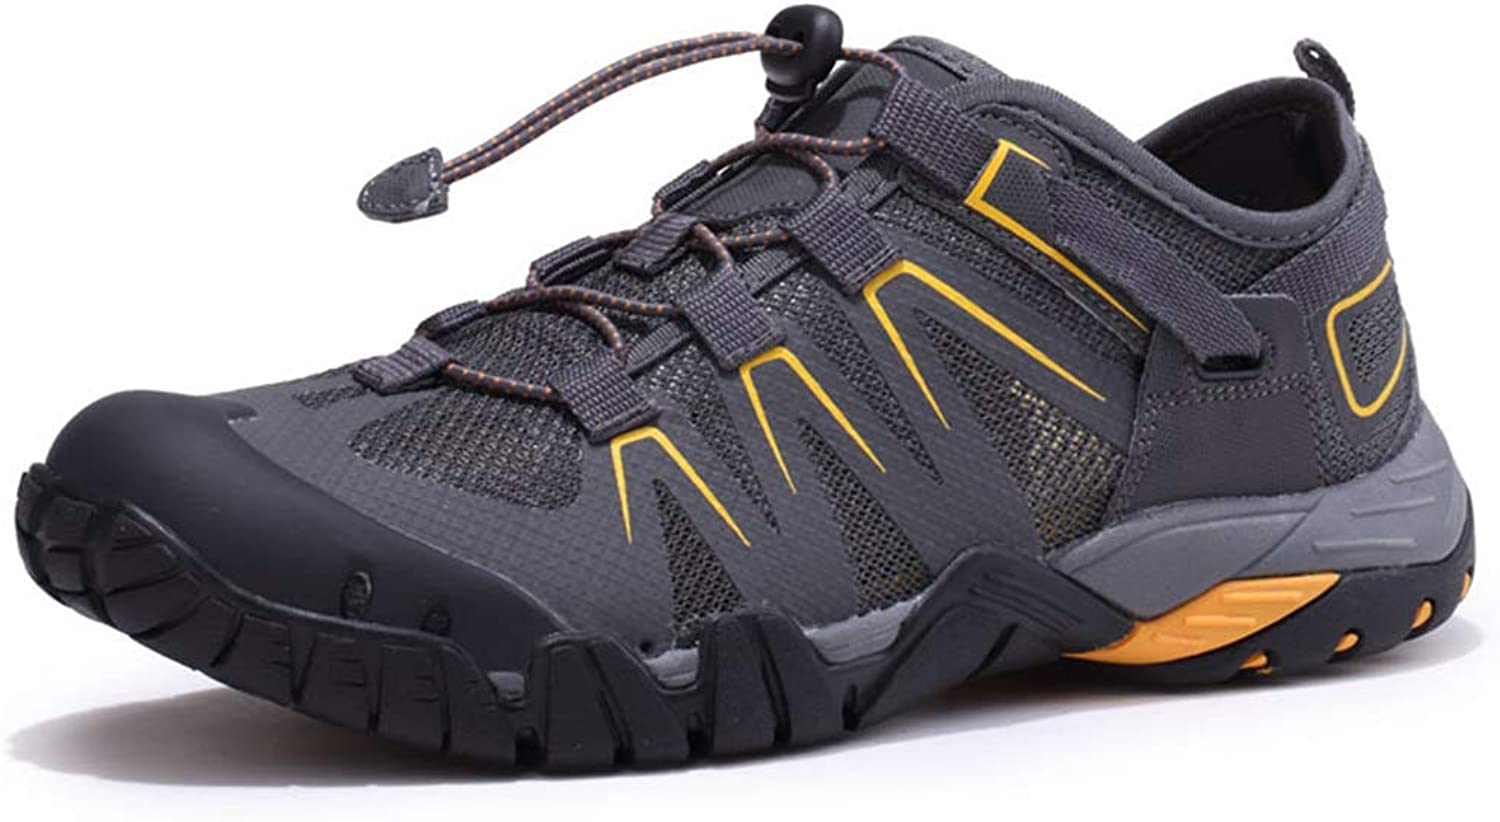 SELCNG Hiking shoes Unisex Walking shoes Waterproof Walking shoes Men's Walking shoes with Outdoor Sports Hiking shoes Non-Slip outsole-grey-44